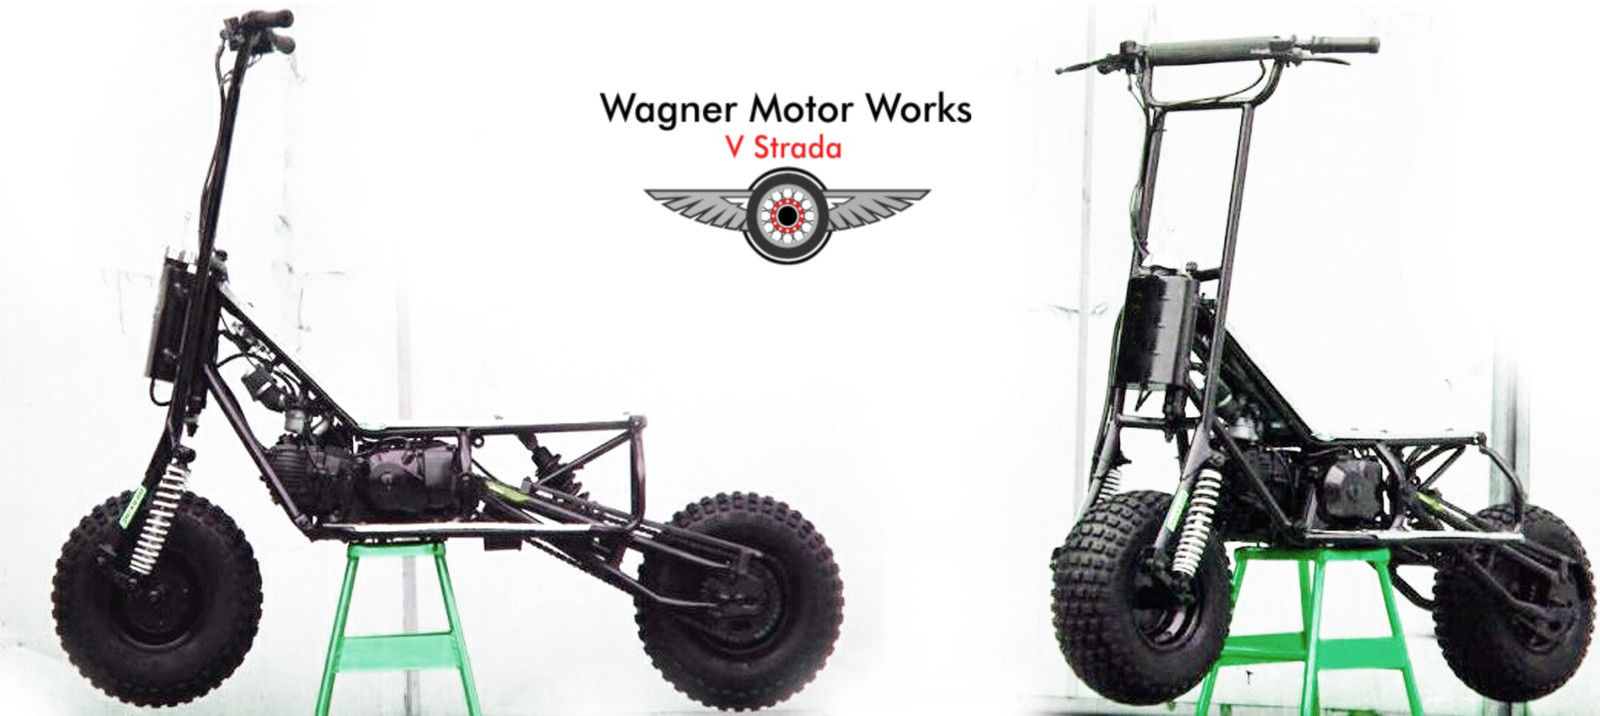 Two Wagner Motor Works V Strada 150 R Off Road Scooters Free Shipping